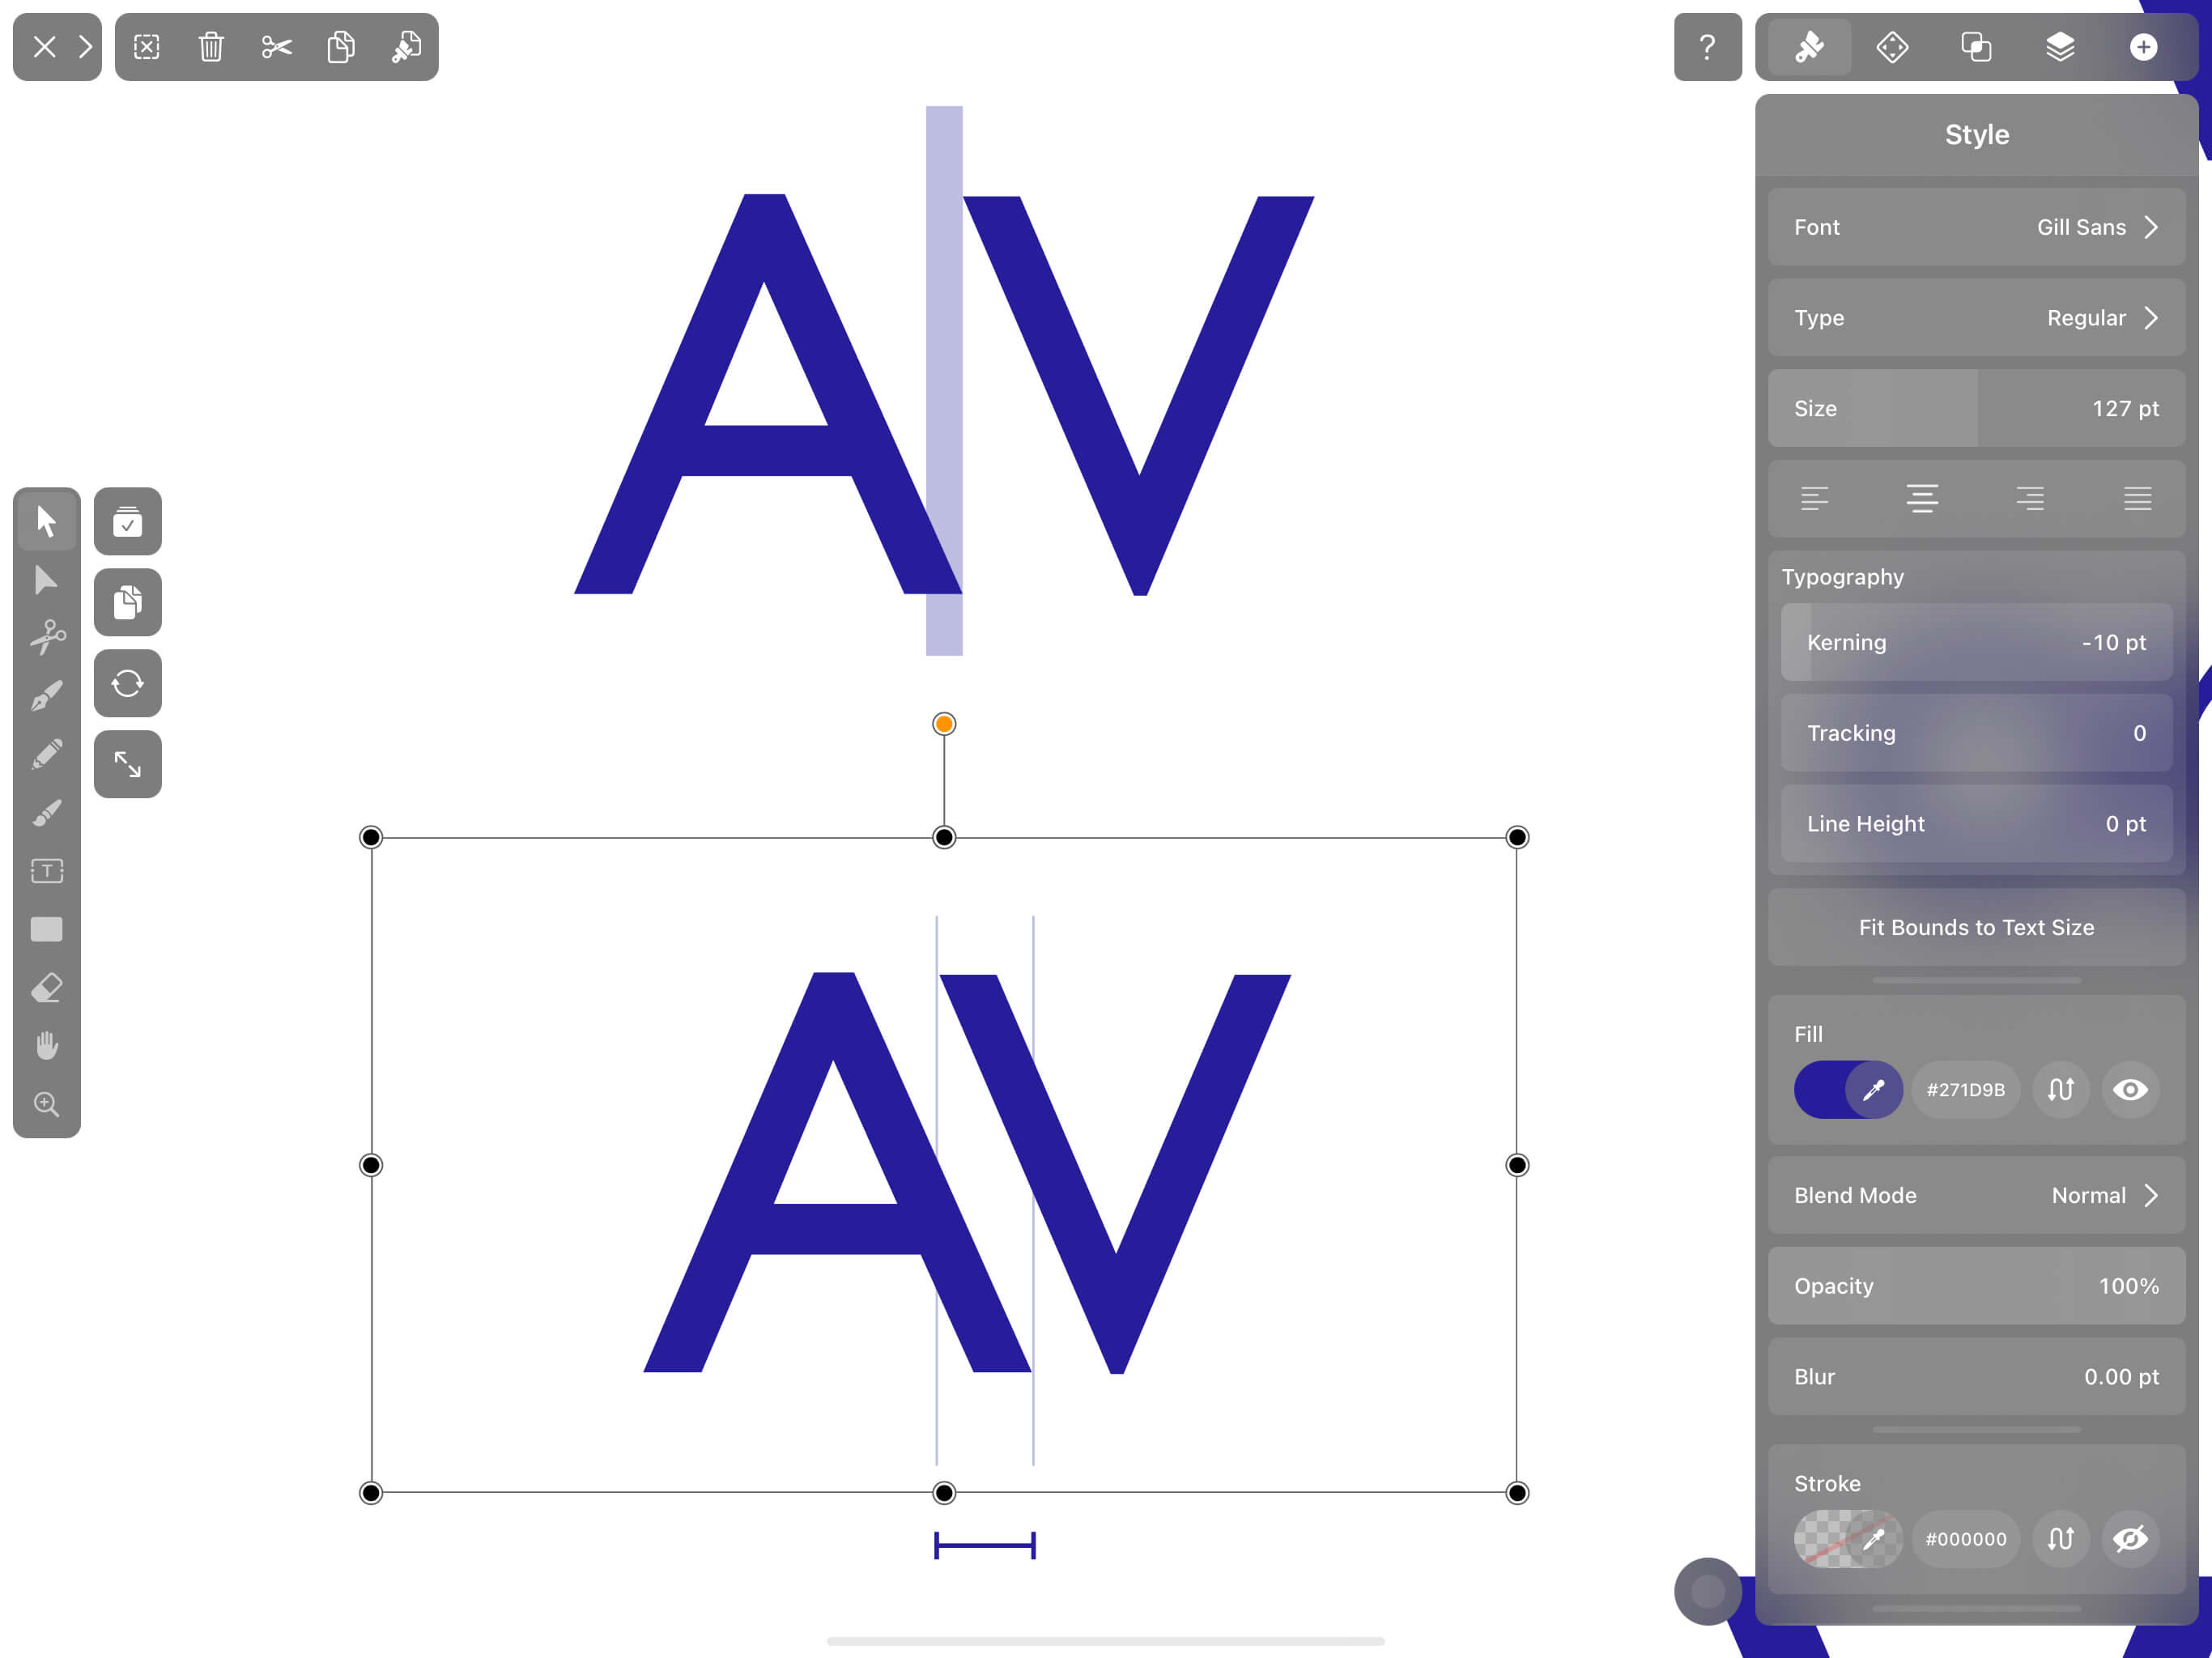 the kerning pair A and V